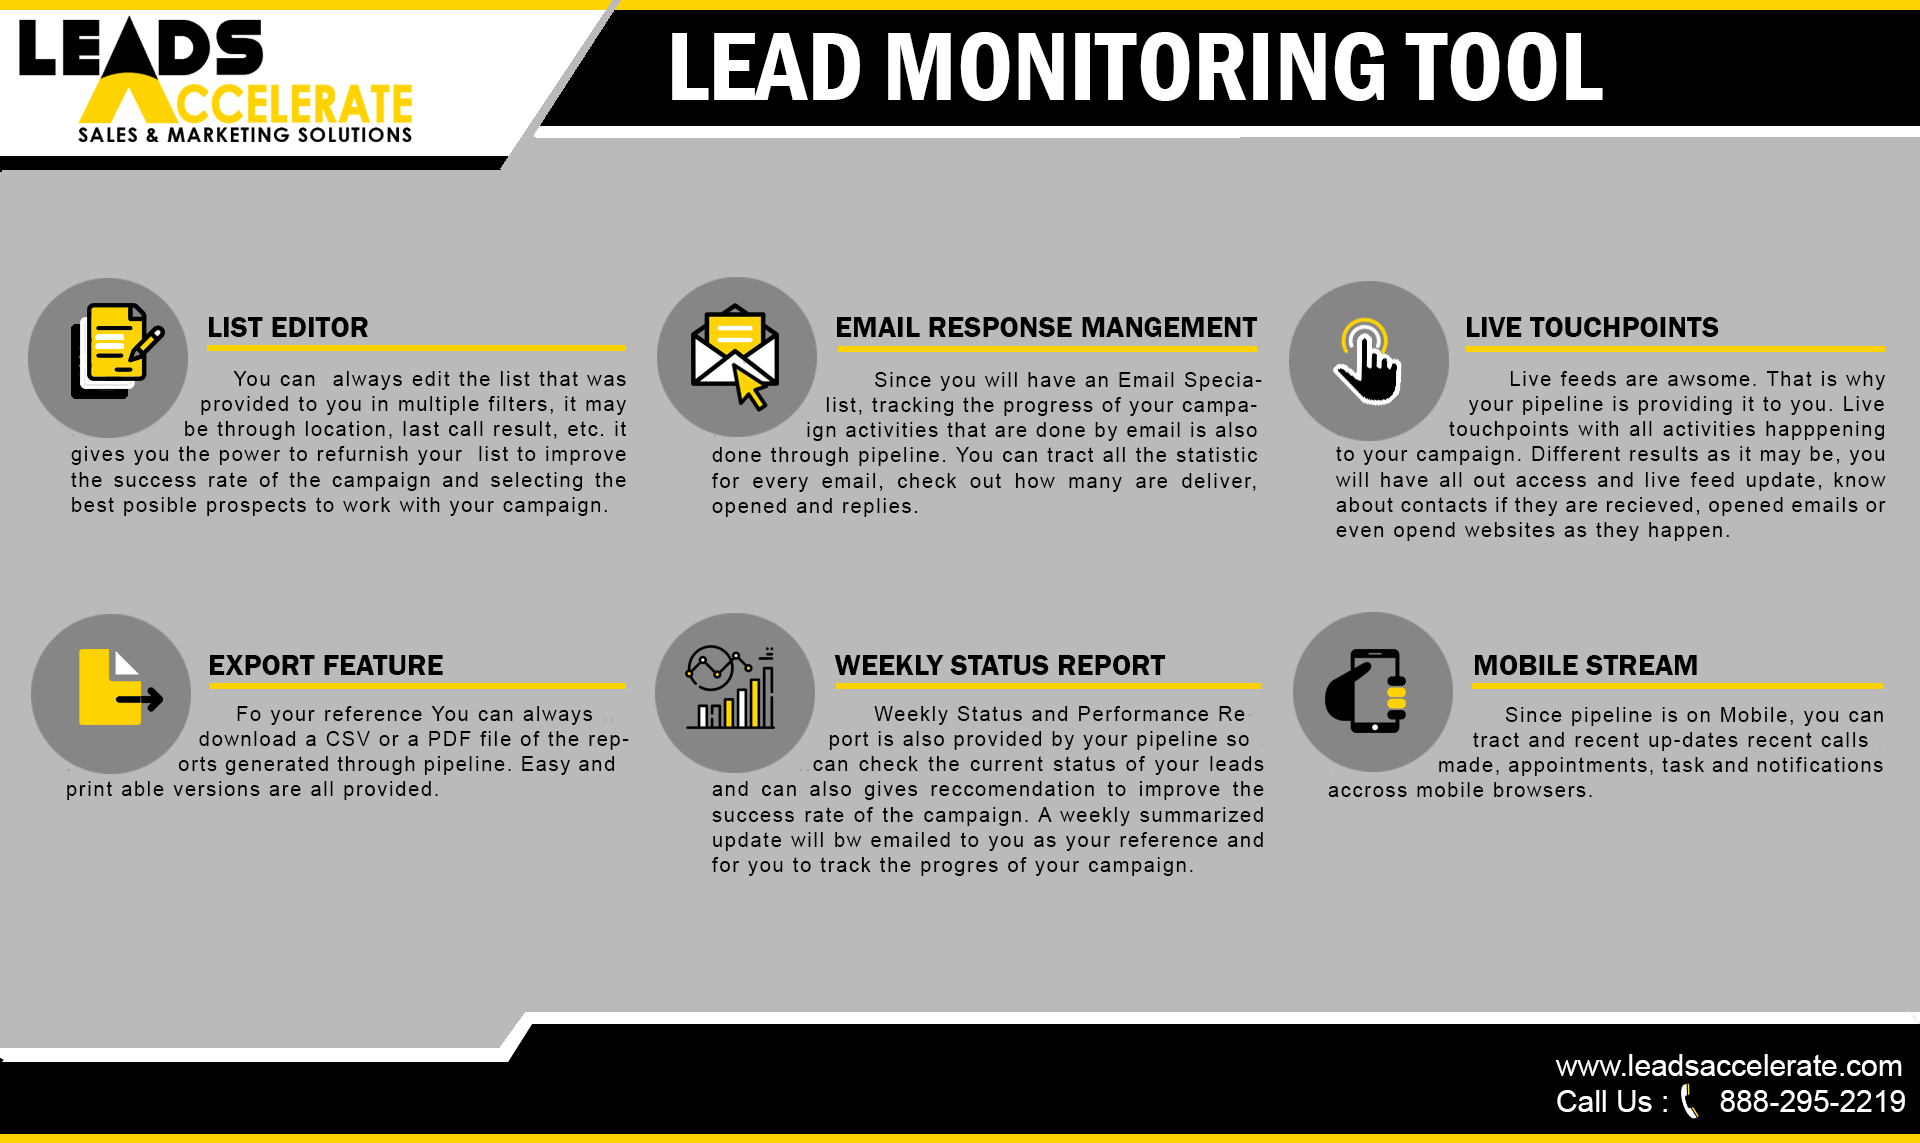 lead monitoring too 1 l